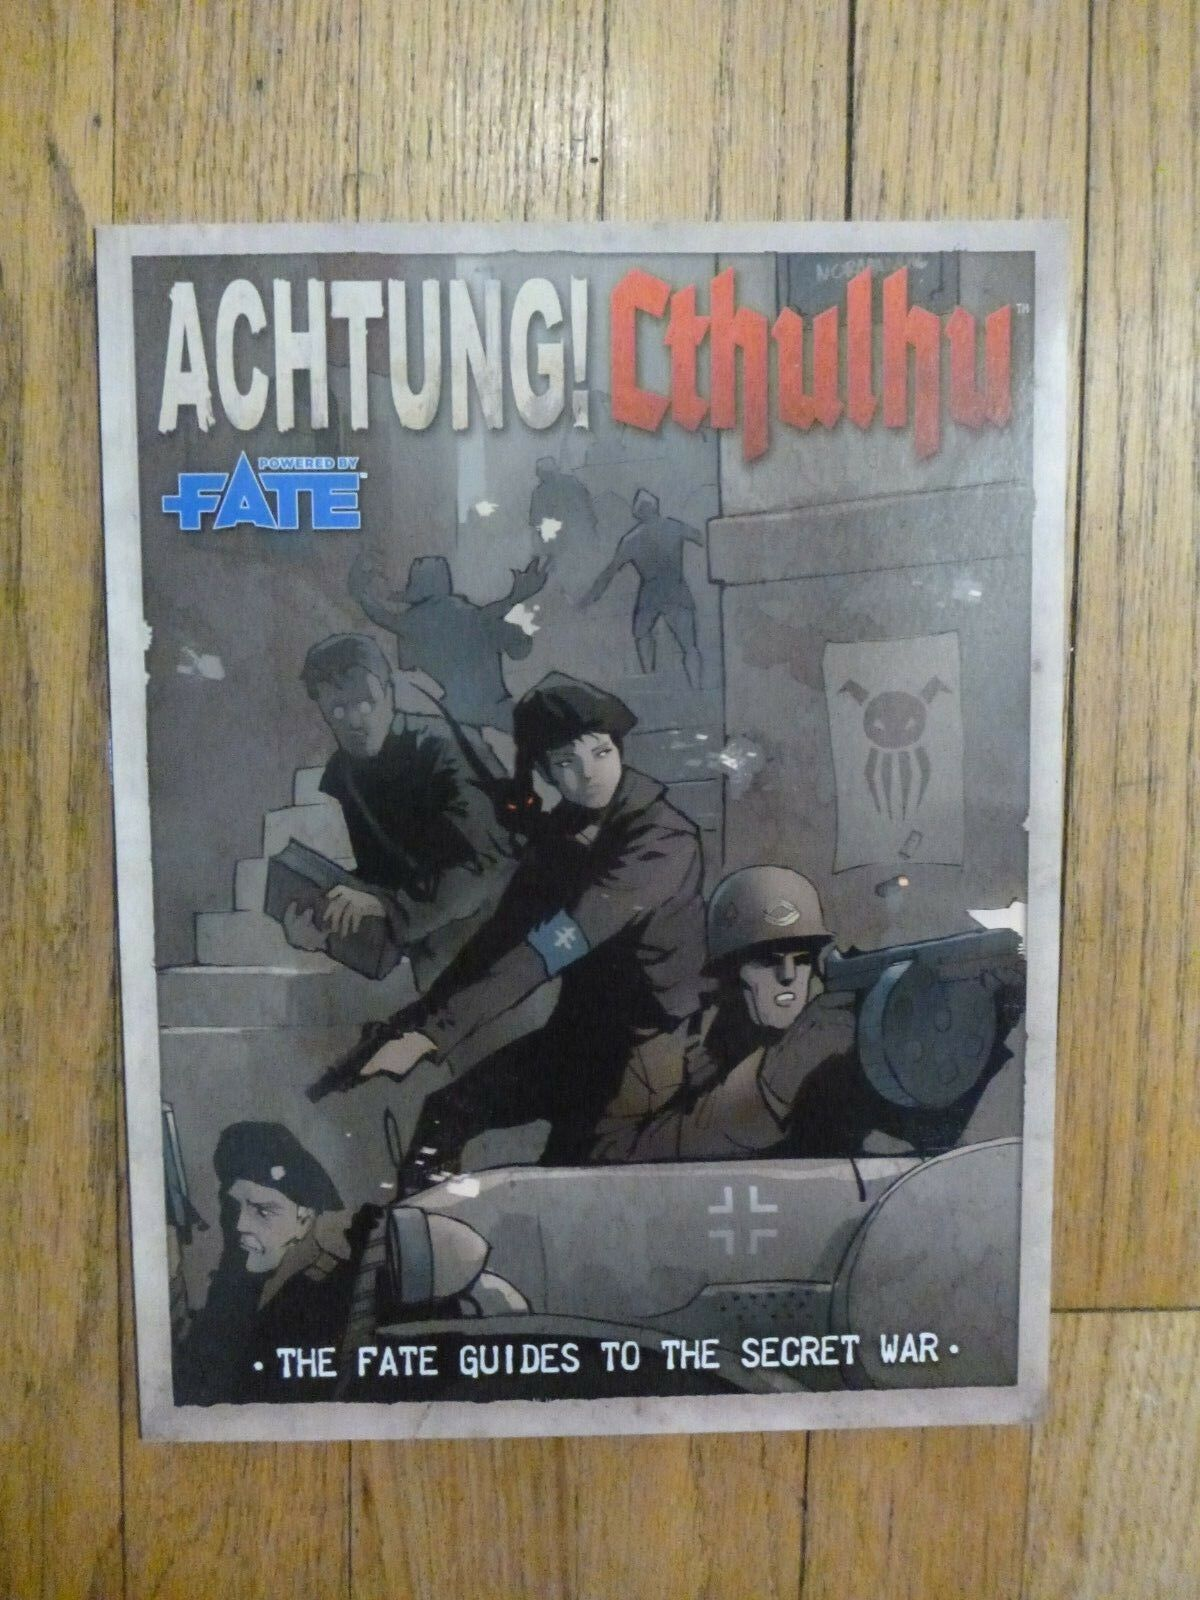 ACHTUNG Cthulhu The Fates Guides to the Secret War RPG Modiphius